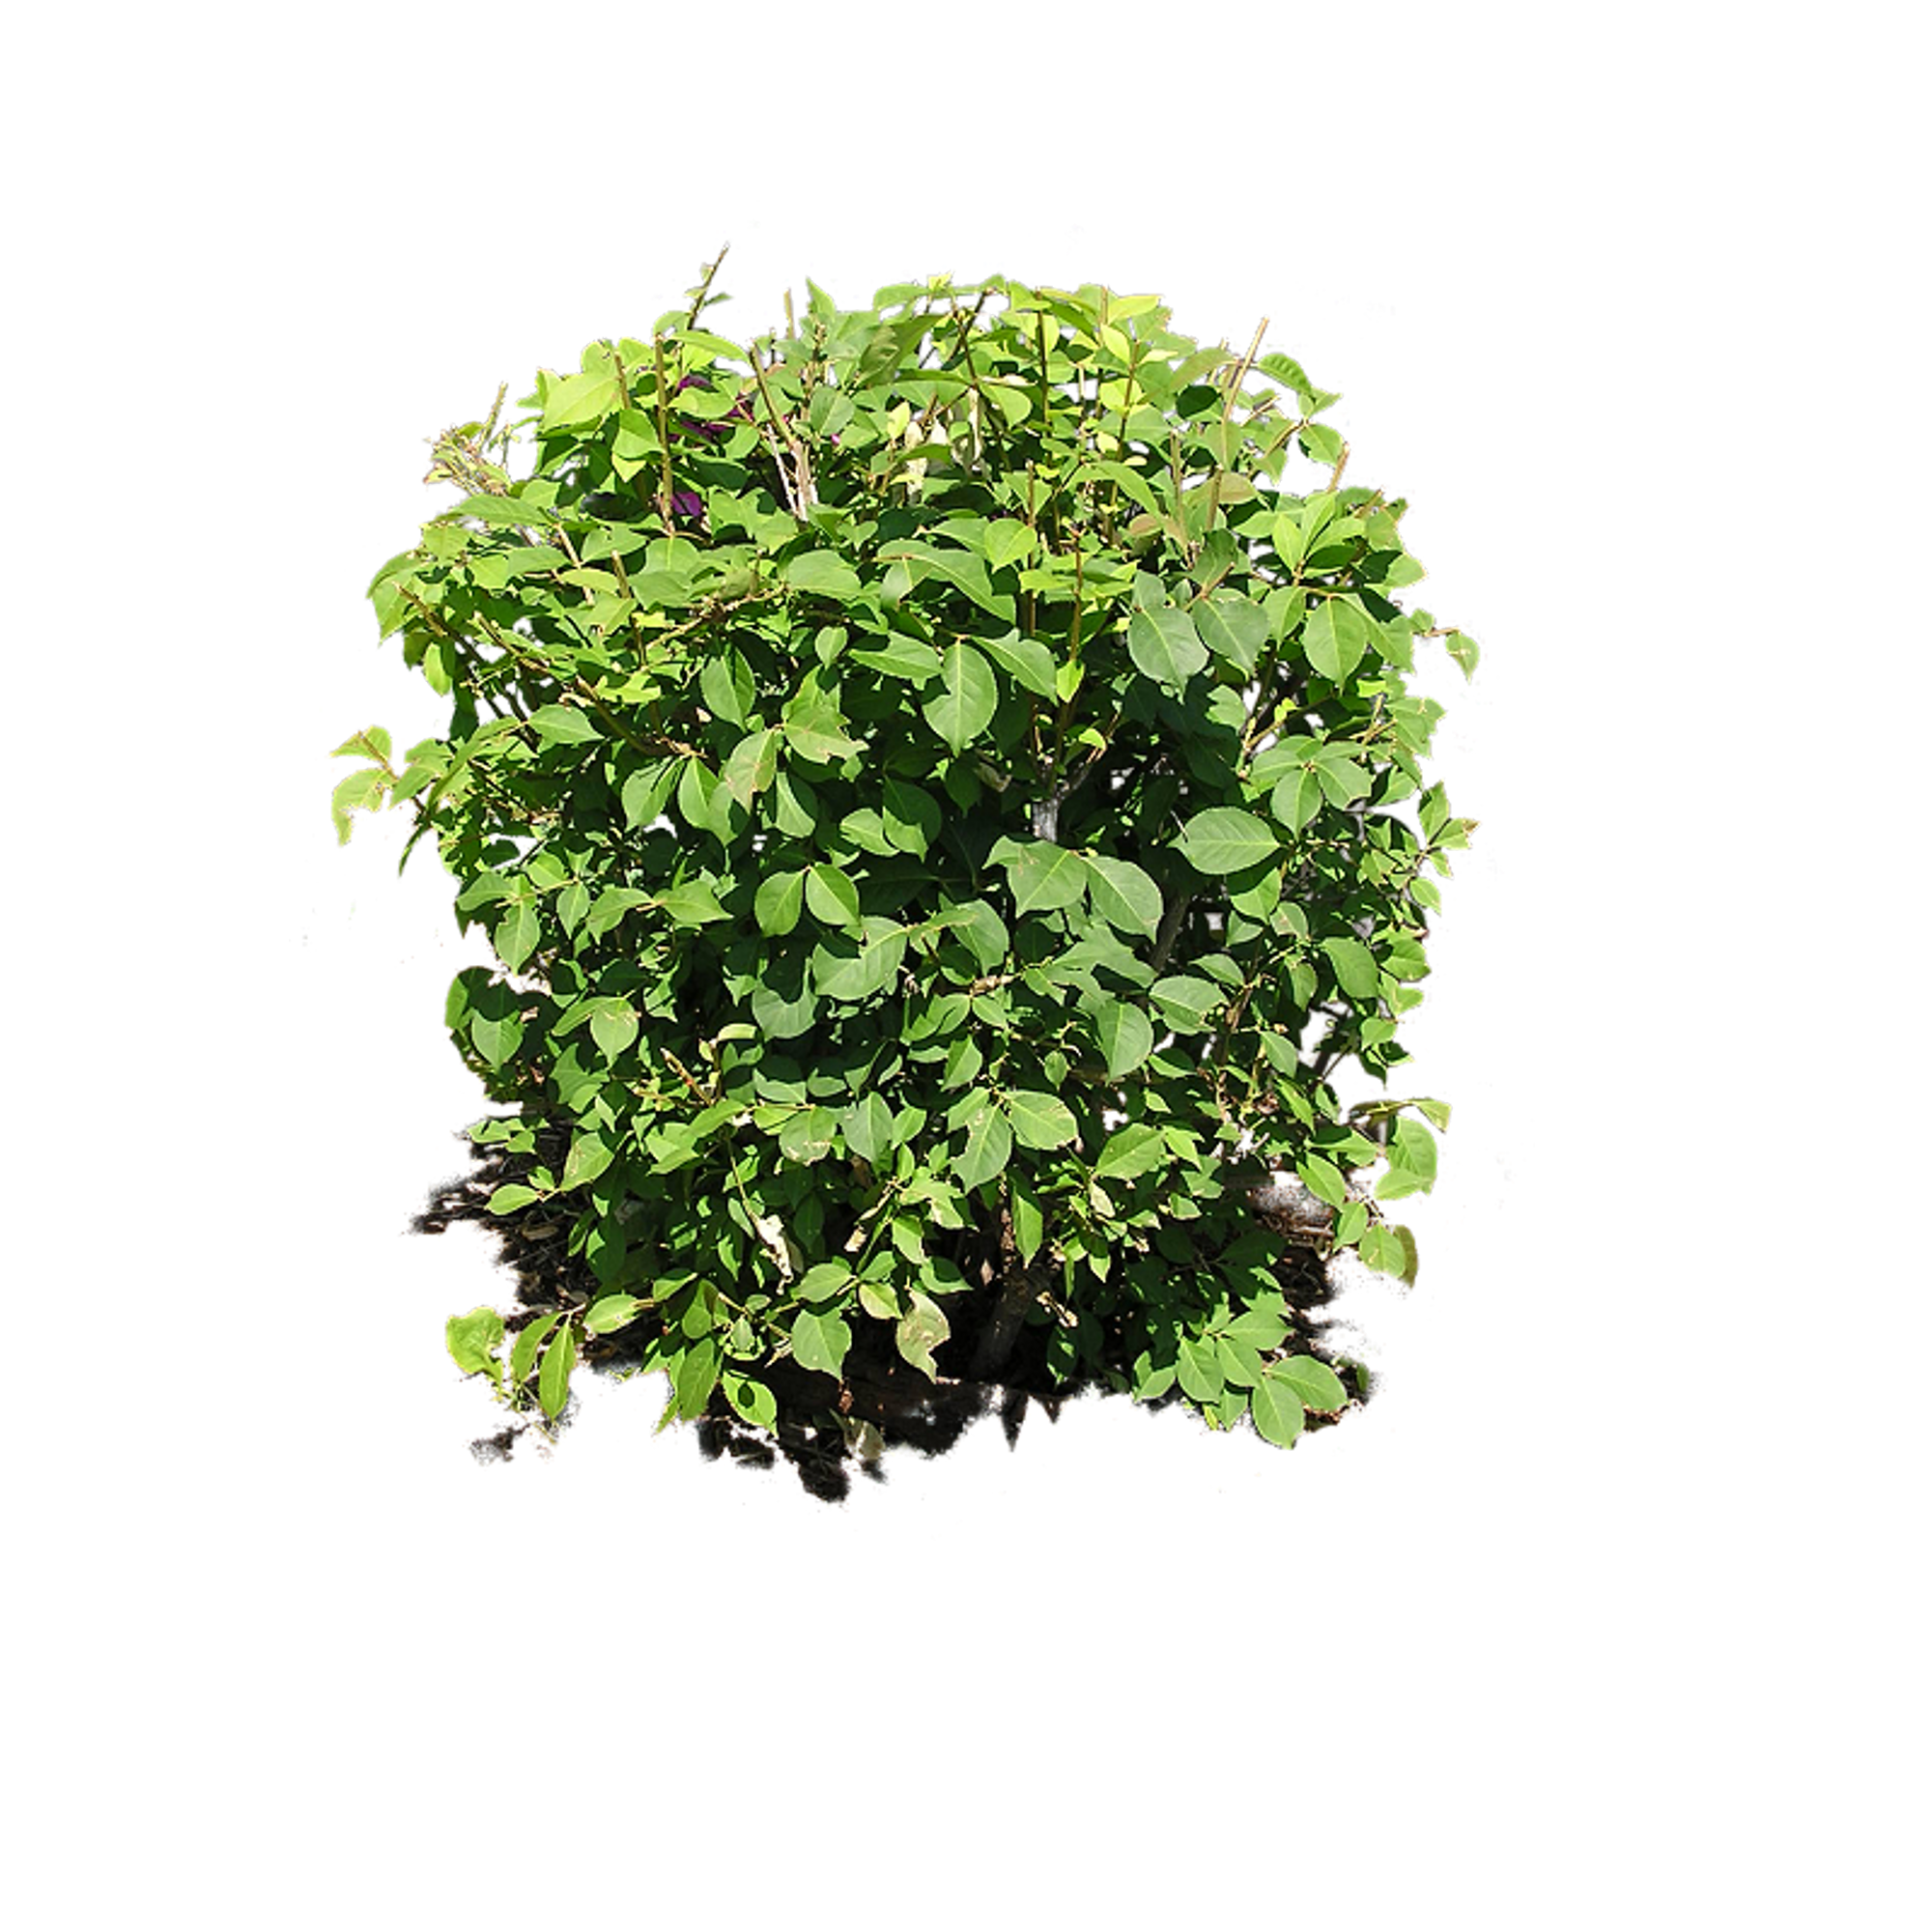 png free library Rose bush shrubbery free. Vector bushes clipart